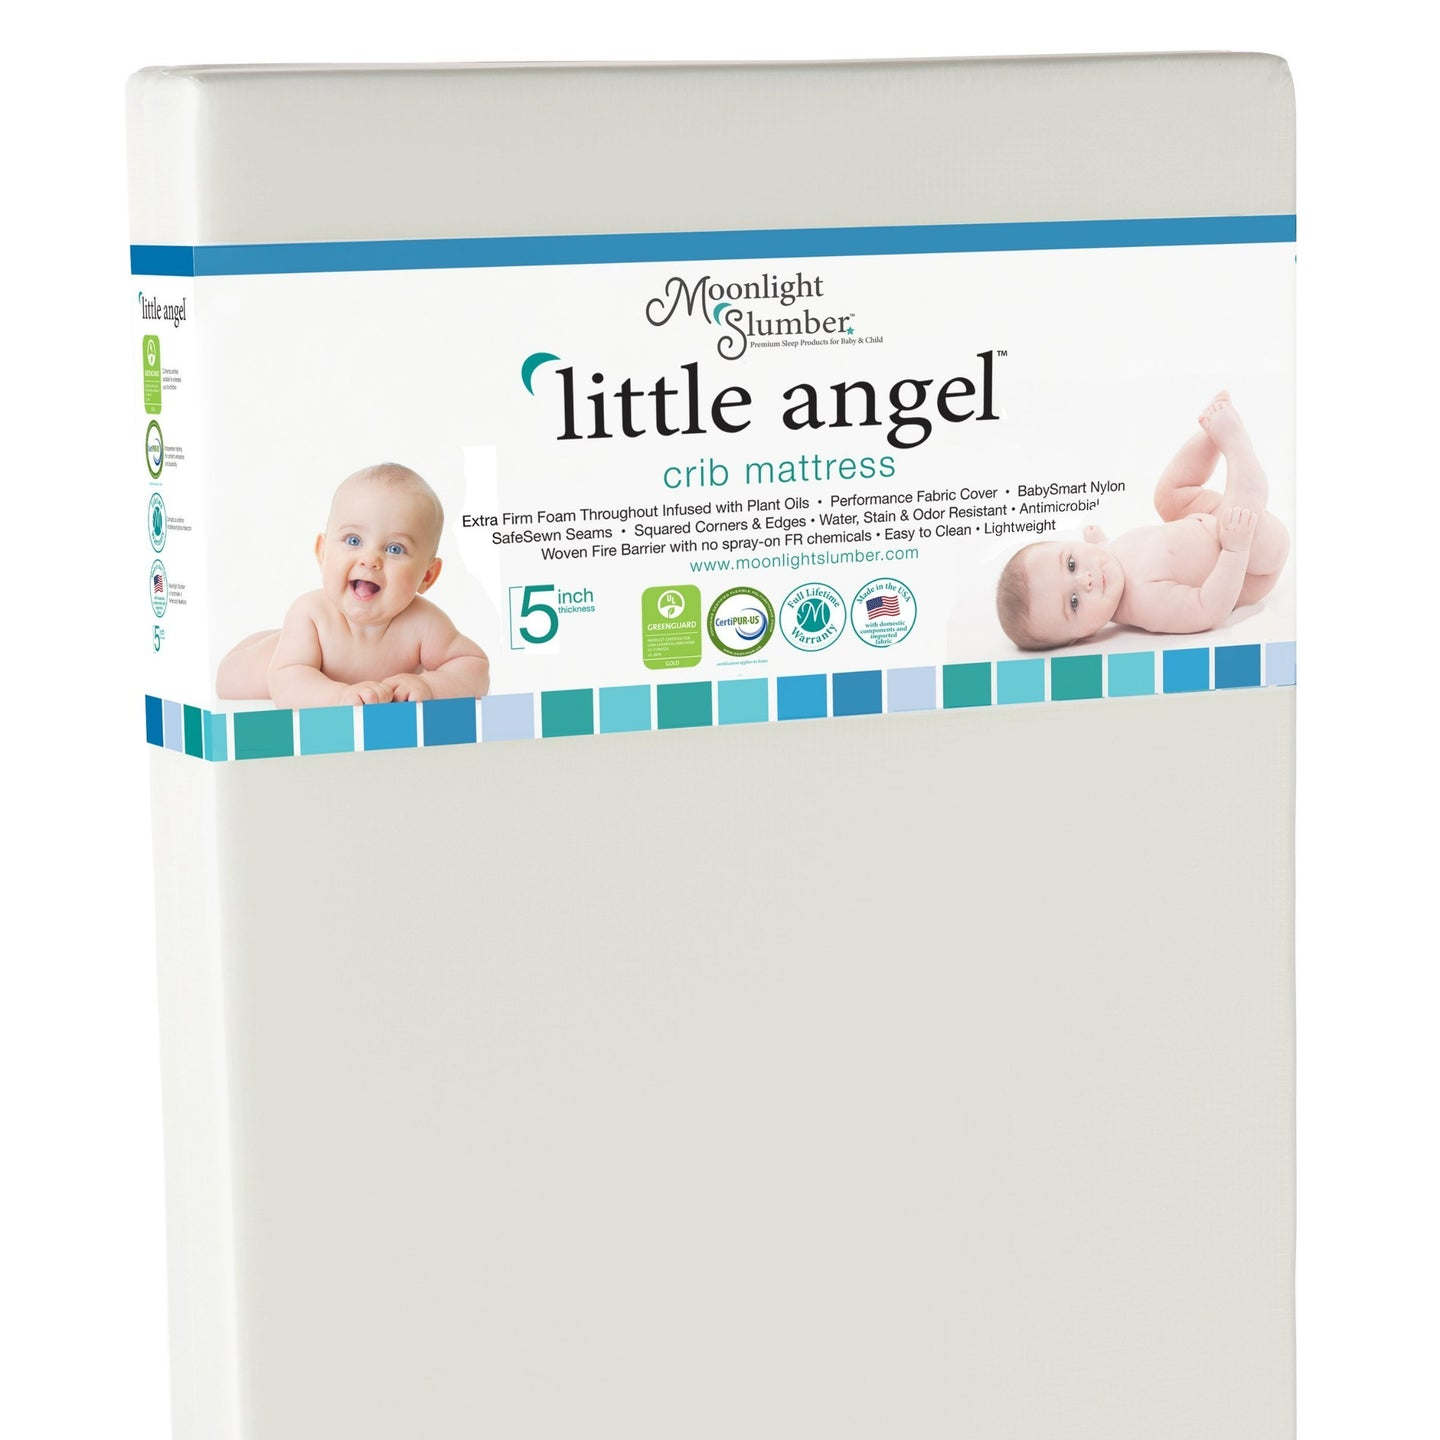 Mattress - Moonlight Slumber Little Angel Crib Mattress